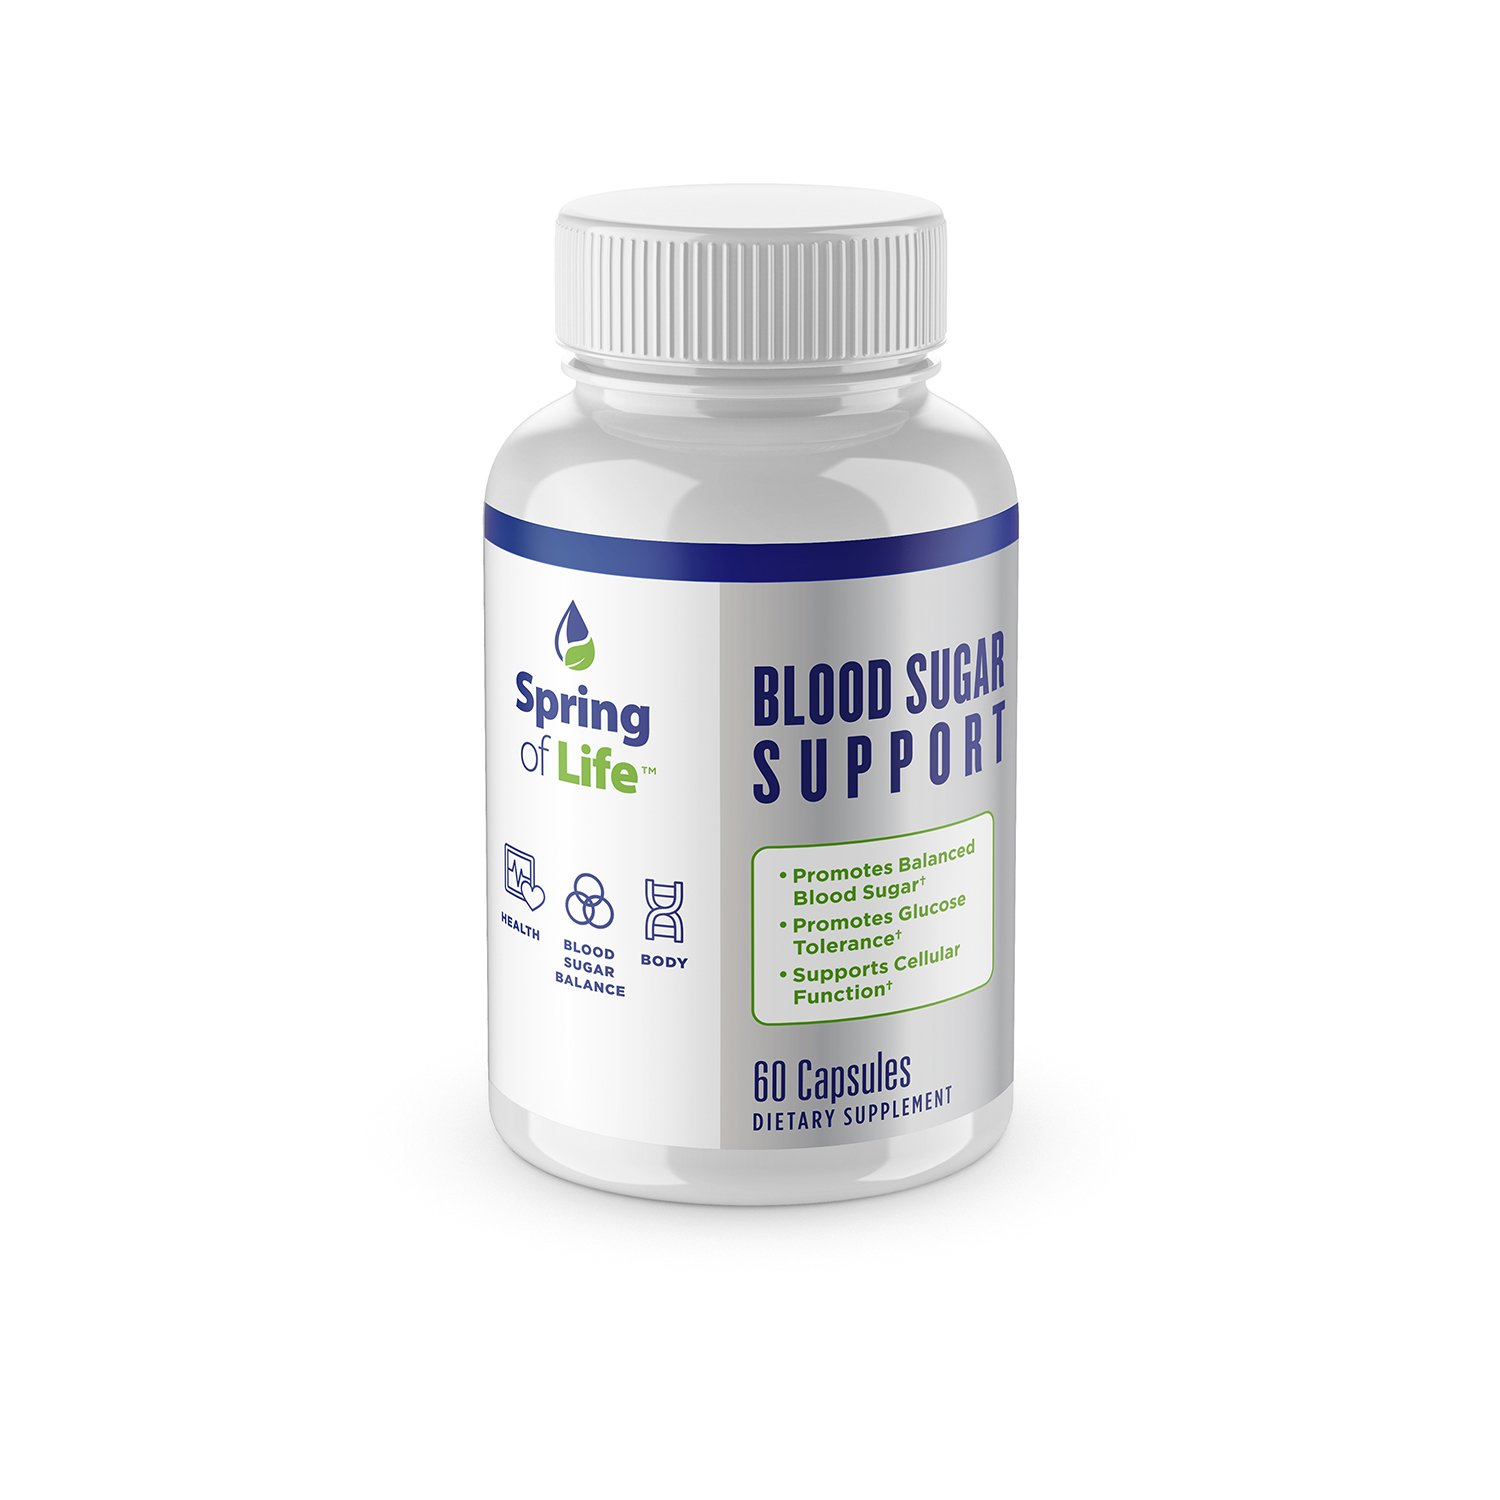 Spring Of Life Blood Sugar Support Formula, 60 Capsules